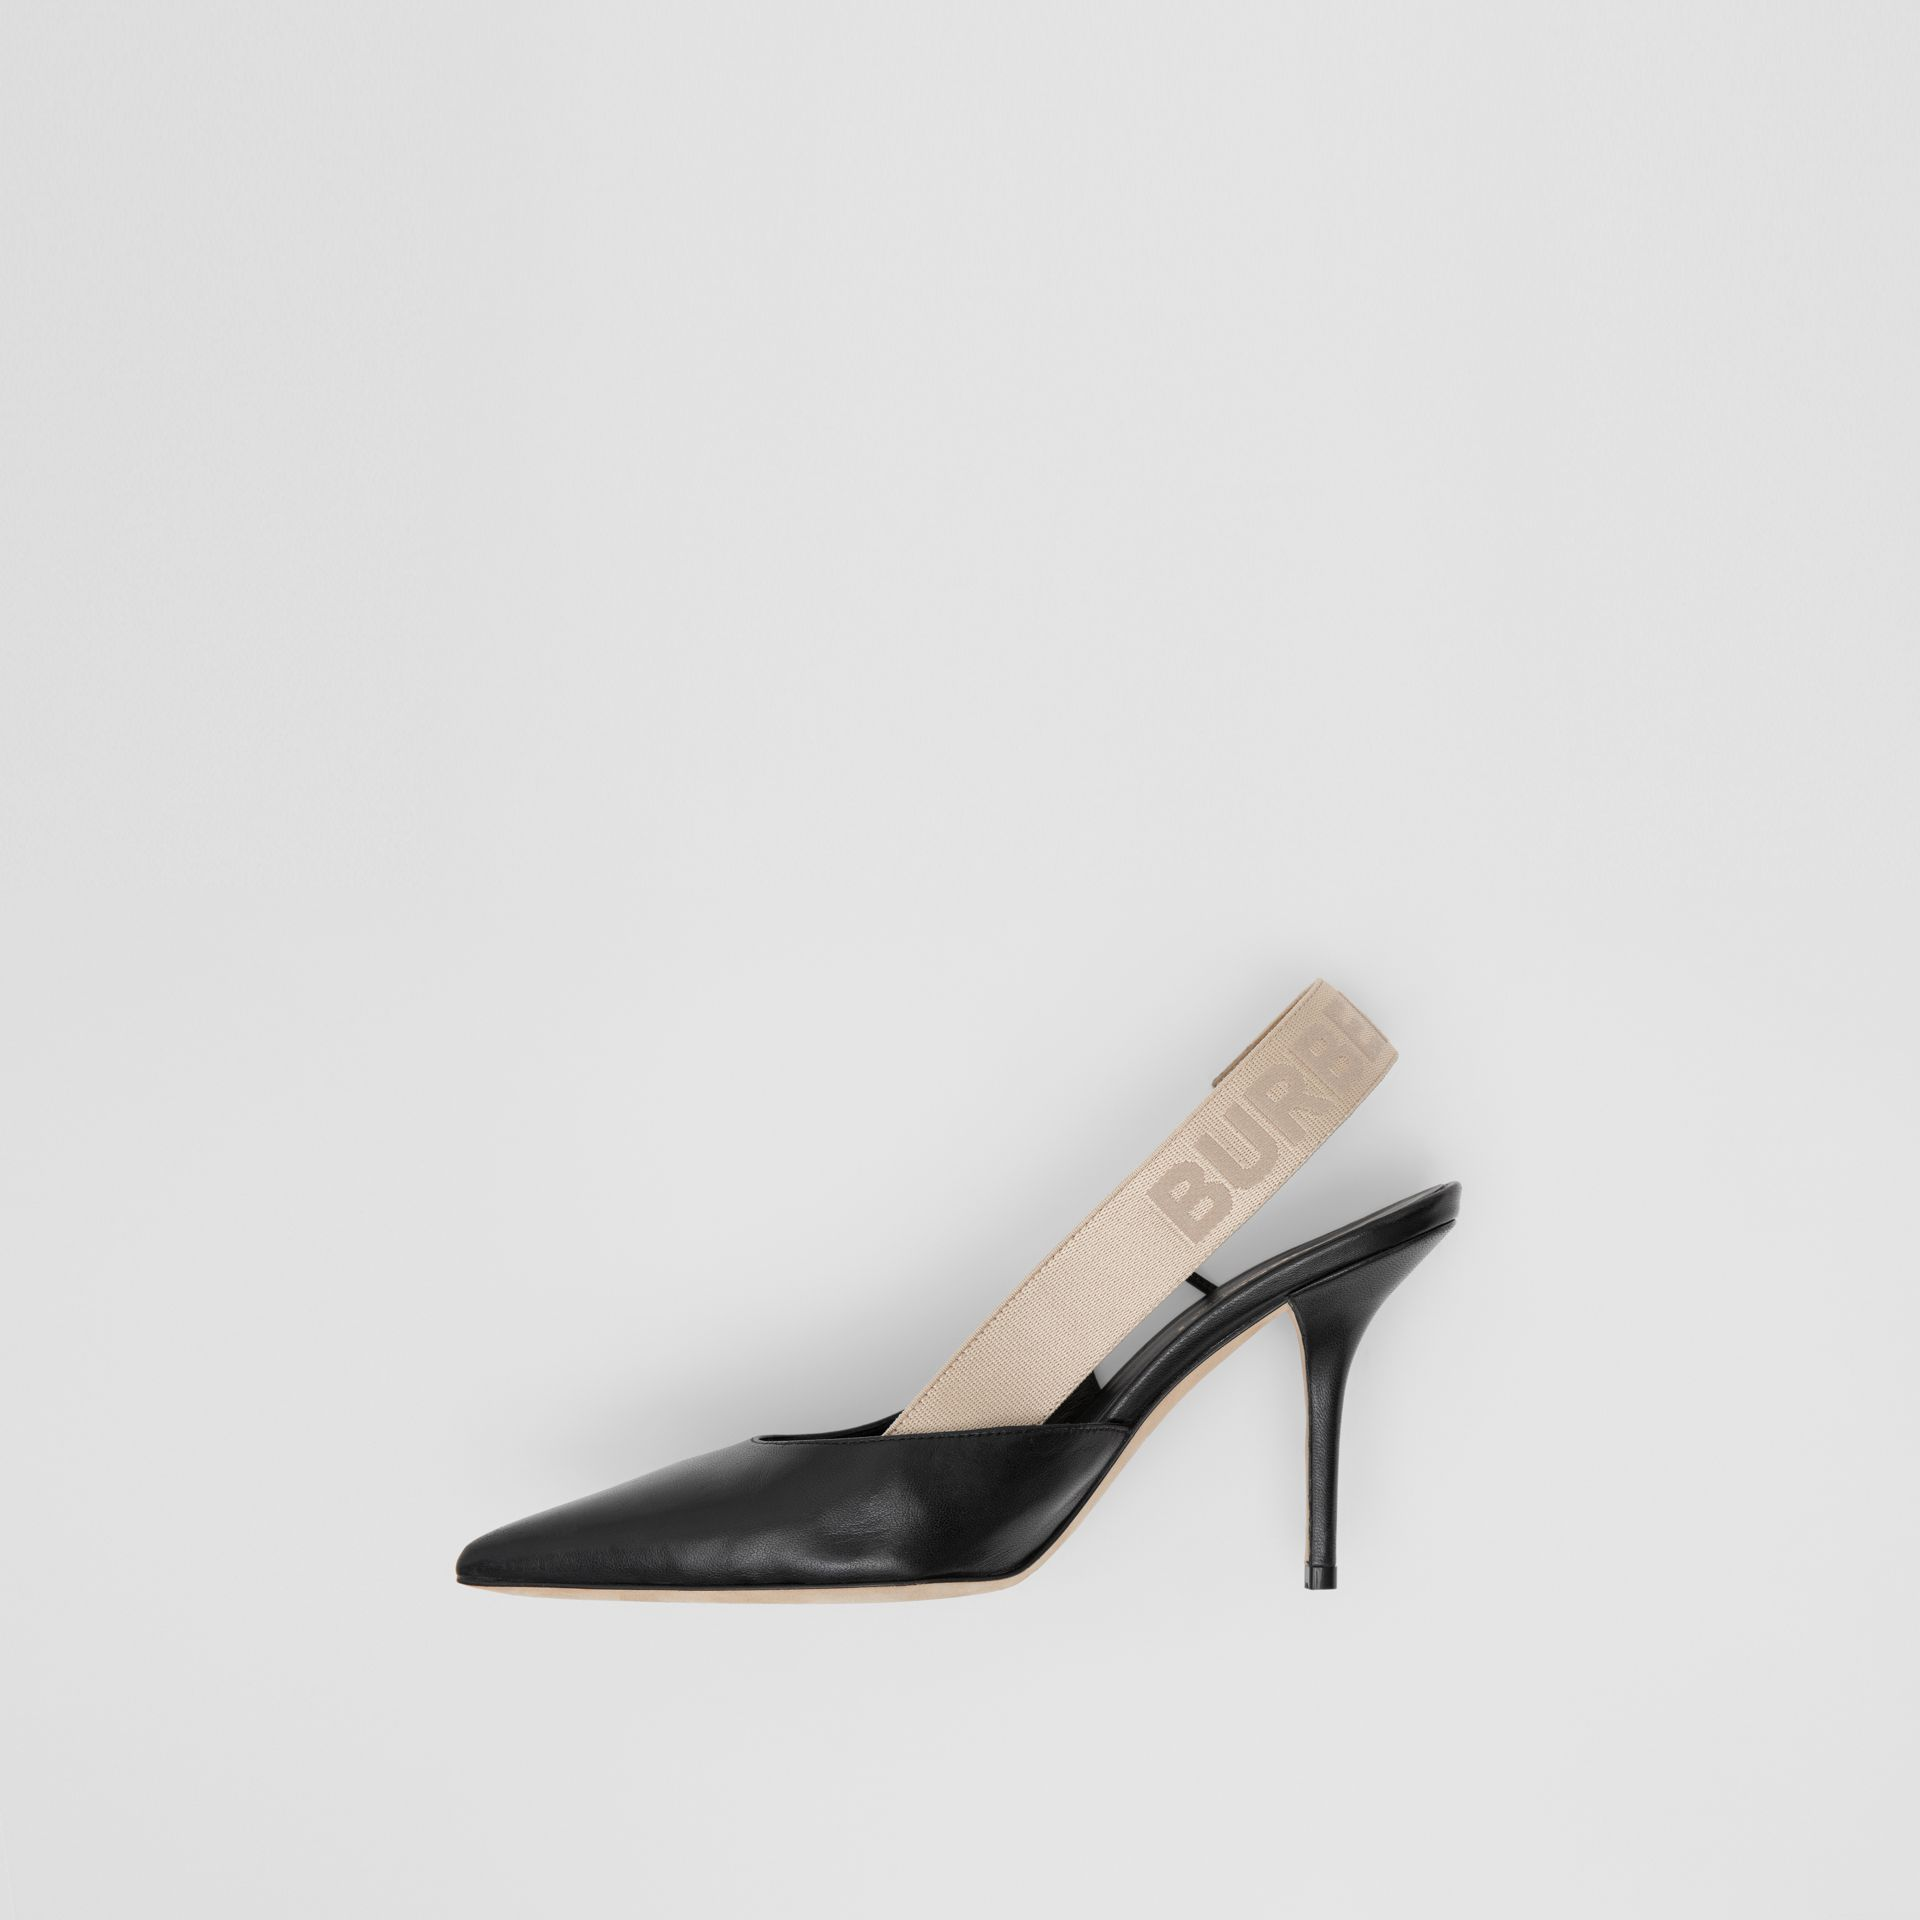 Logo Detail Lambskin Slingback Pumps in Black - Women | Burberry - gallery image 1